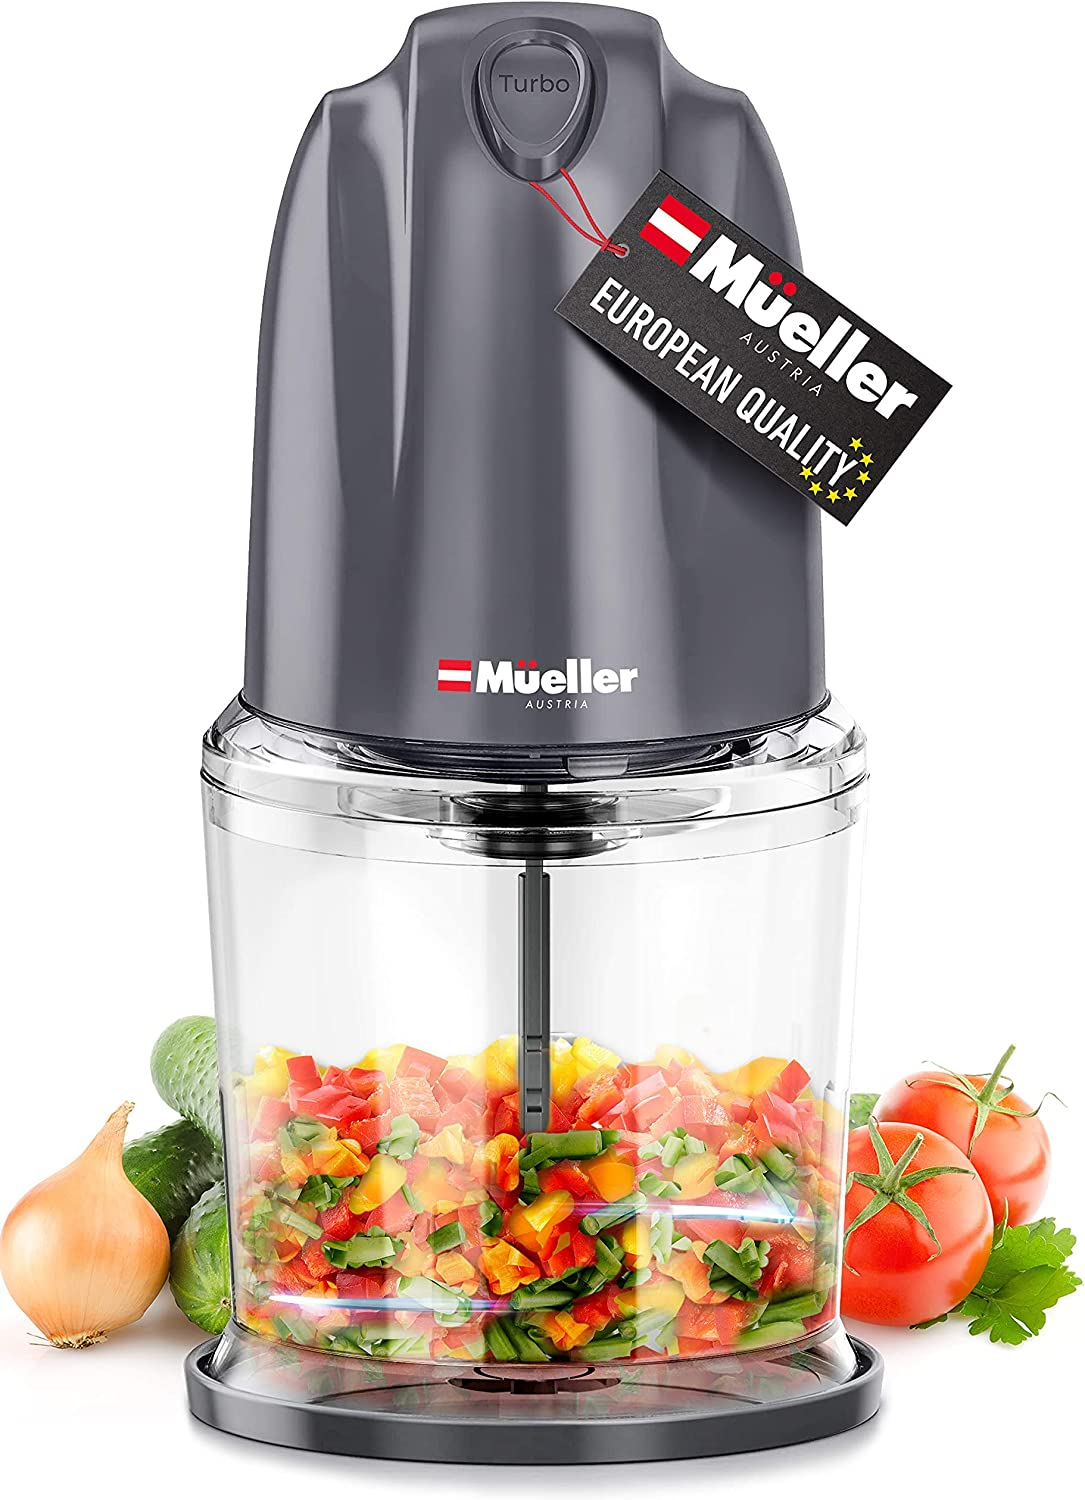 Mueller Electric Chopper Mini Food Processor for Vegetables, Fruits, Nuts, Meats, and Puree - 2 Stainless Steel Blades & Whisk for Chopping, Blending, Slicing, Whisking, Gray